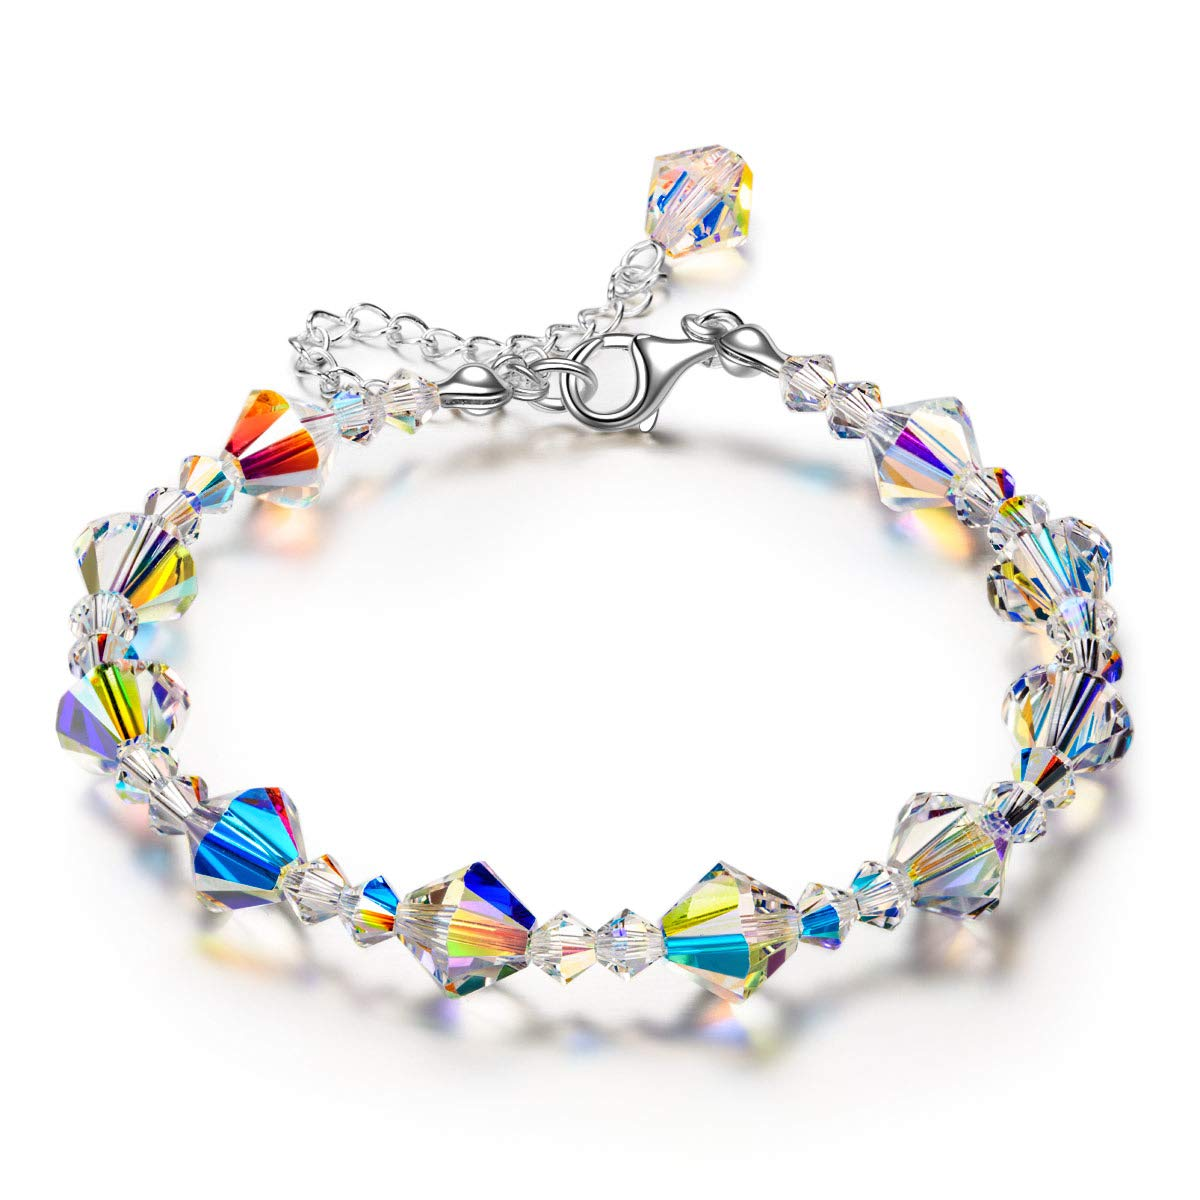 LADY COLOUR Mother's Day Jewelry Gifts for Mom, 925 Sterling Silver Adjustable Link Bracelet Made with Swarovski Crystal Jewelry Gift Box Packaging, Anniversary Birthday Gifts for Her Wife